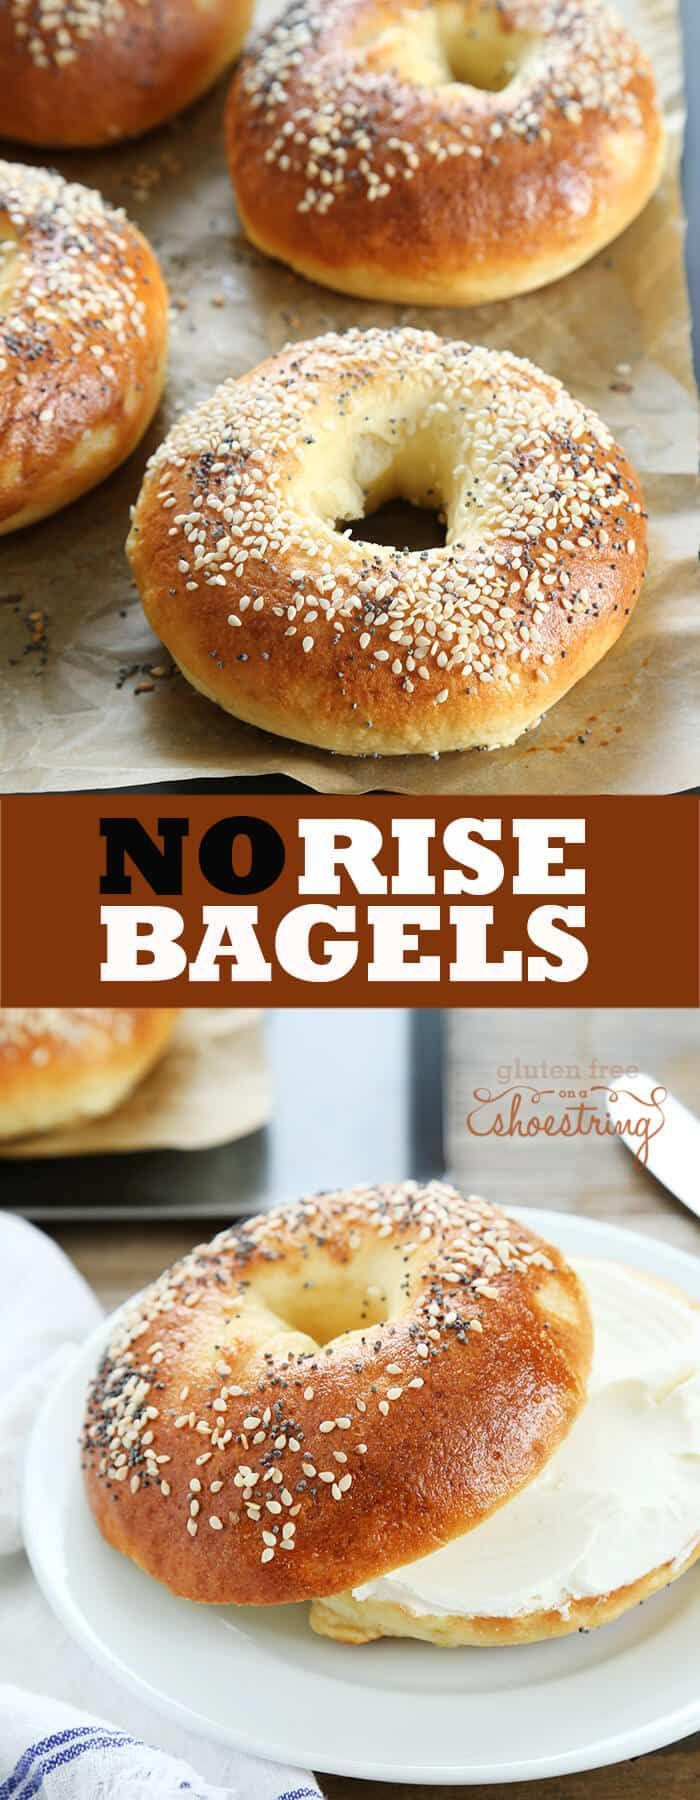 These no rise gluten free bagels are made with yeast, but still ready in about 40 minutes because there's no rise at all. No planning necessary!